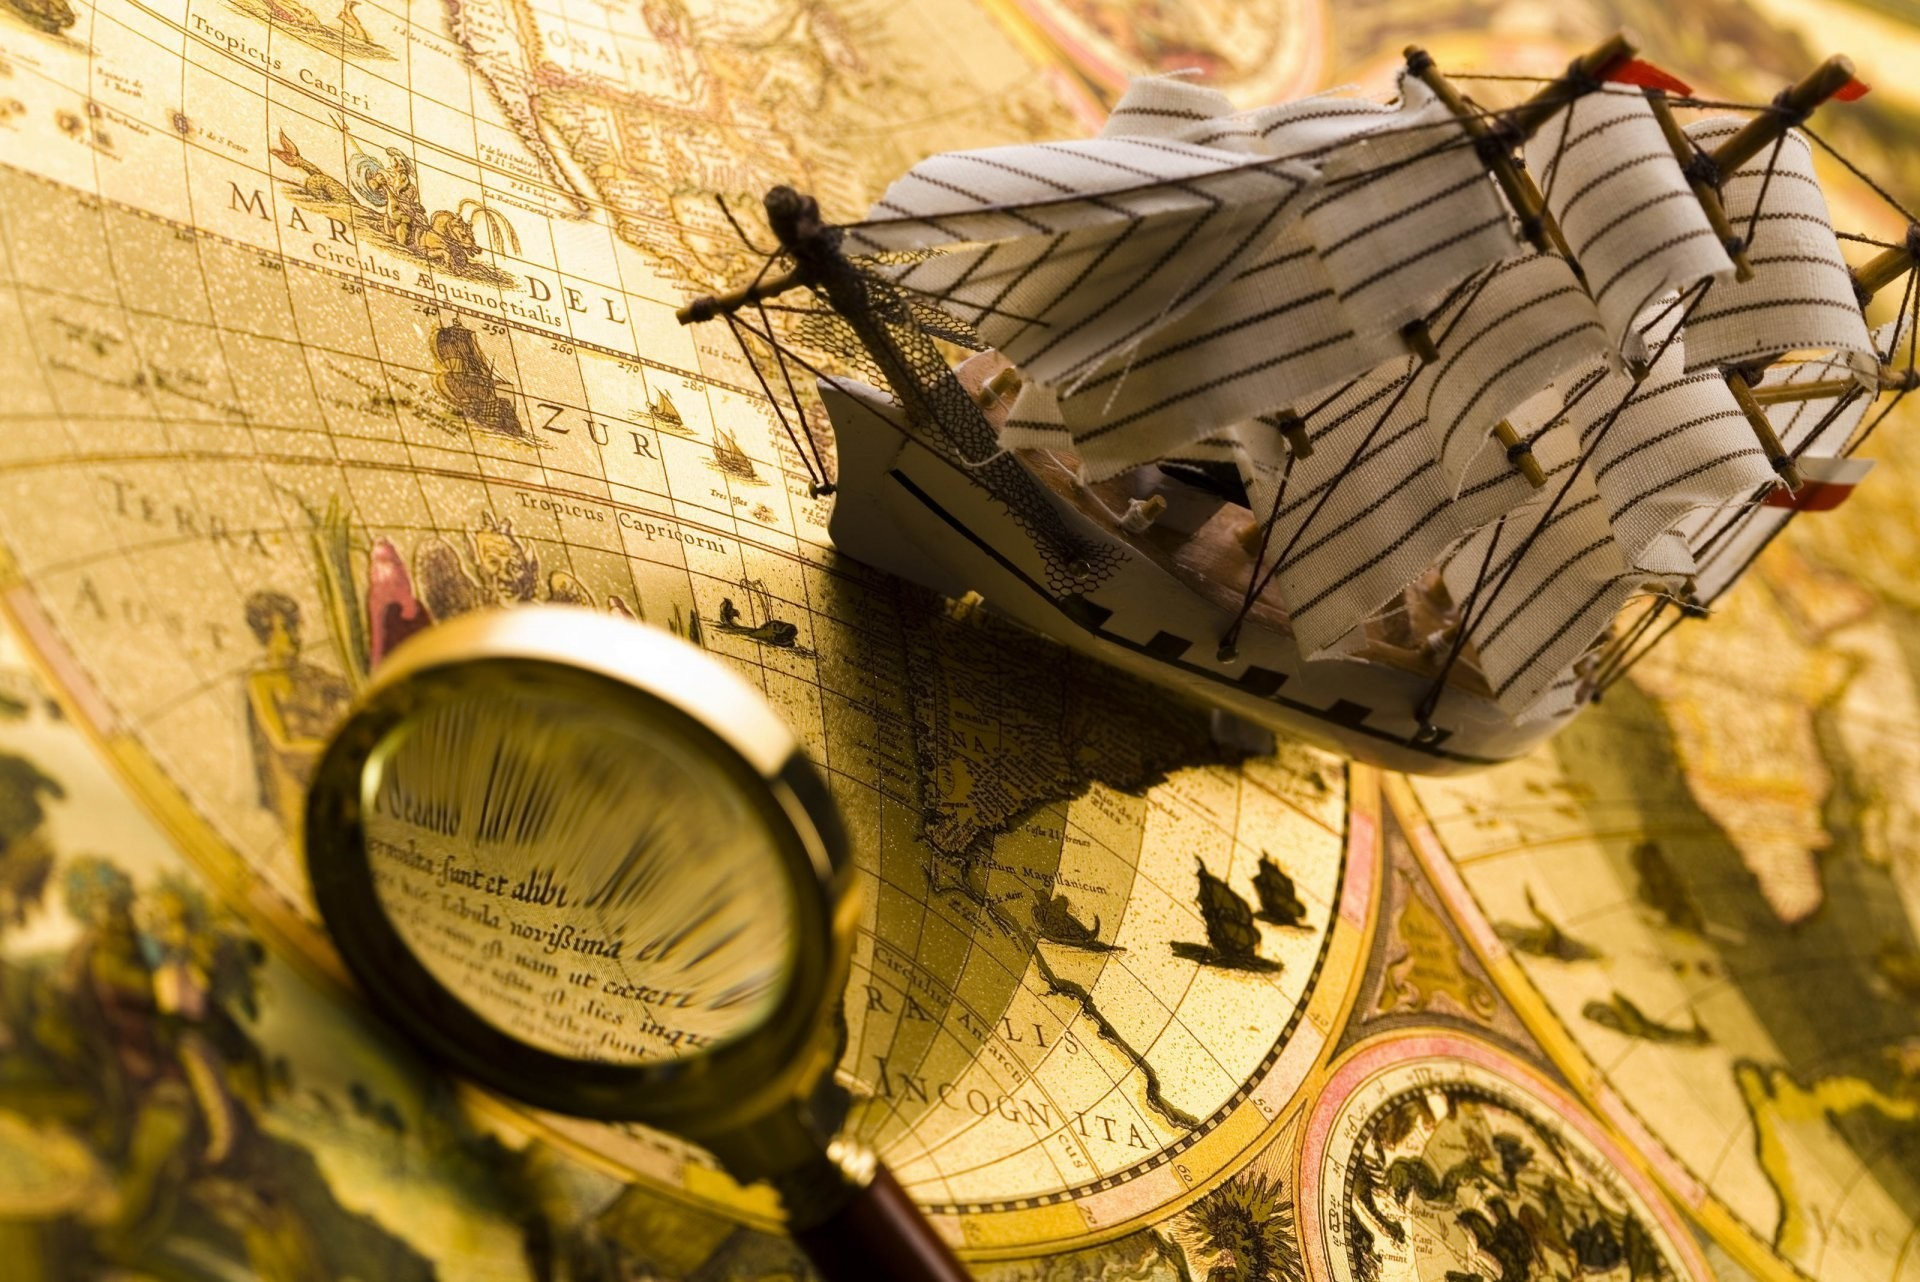 Res: 1920x1282, nautical composition ancient map magnifier travel ship blur bokeh wallpaper.